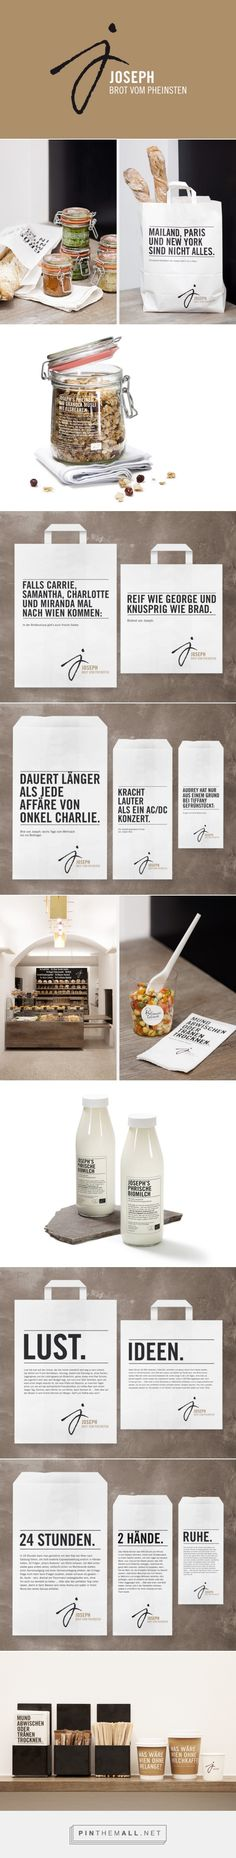 Martin Dvorak, Agentur für Gestaltung packaging branding for Joseph Brot curated by Packaging Diva PD. Wouldn't you like to try out this bakery? Delish.